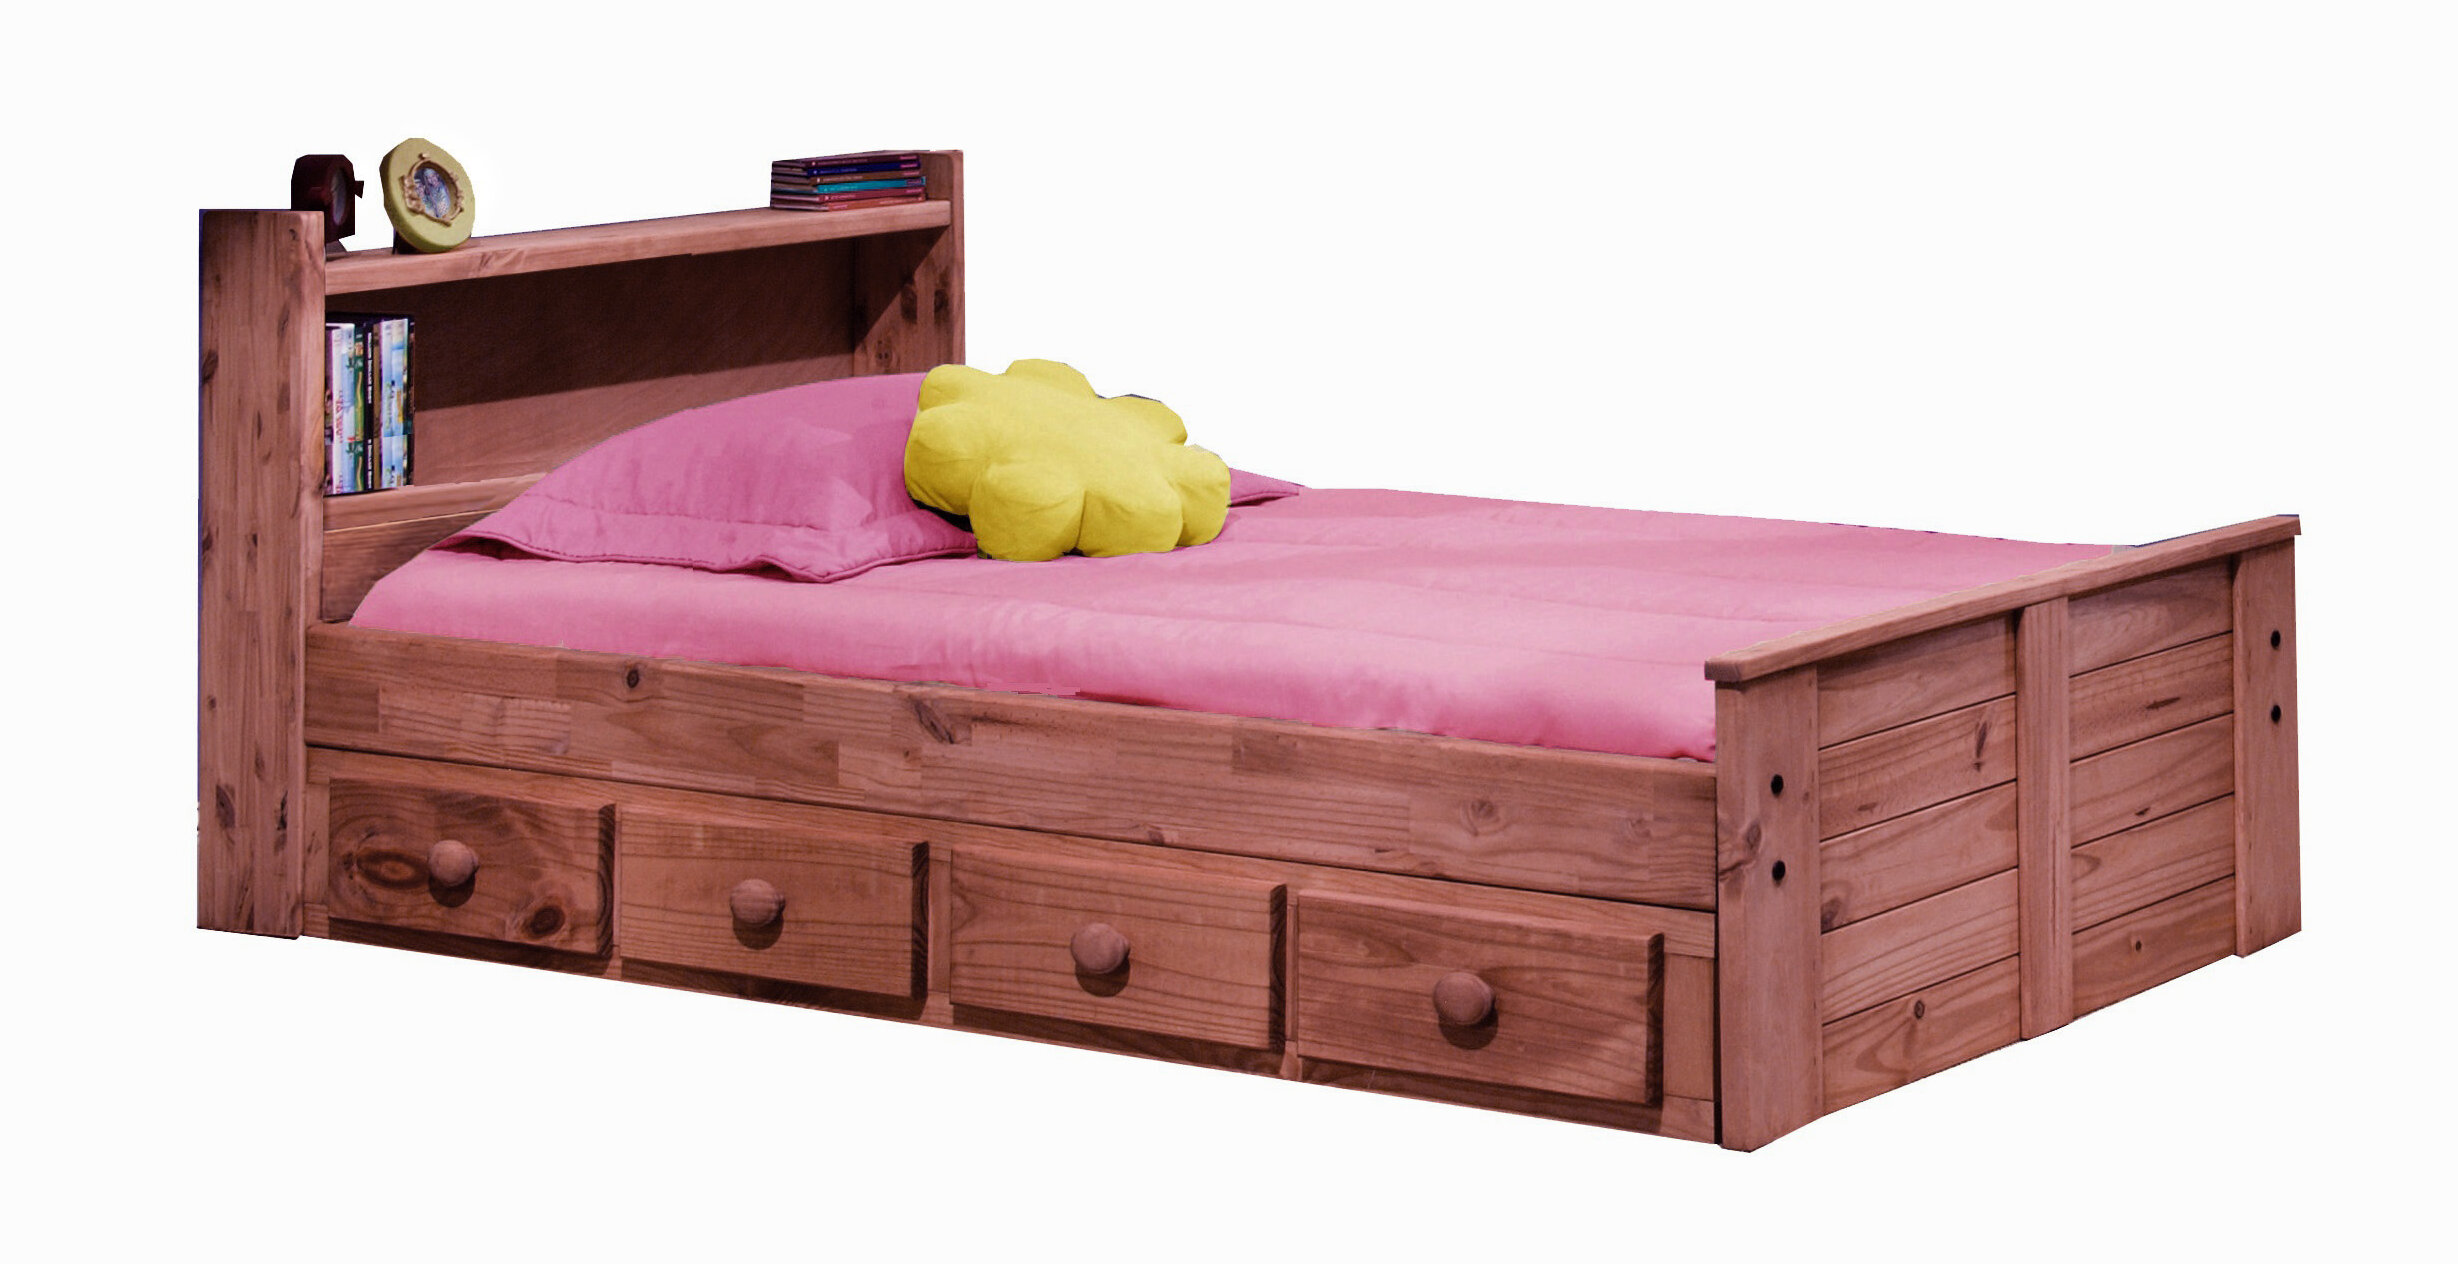 Chiu Twin Mate S Captain S Bed With Bookcase Headboard And Storage